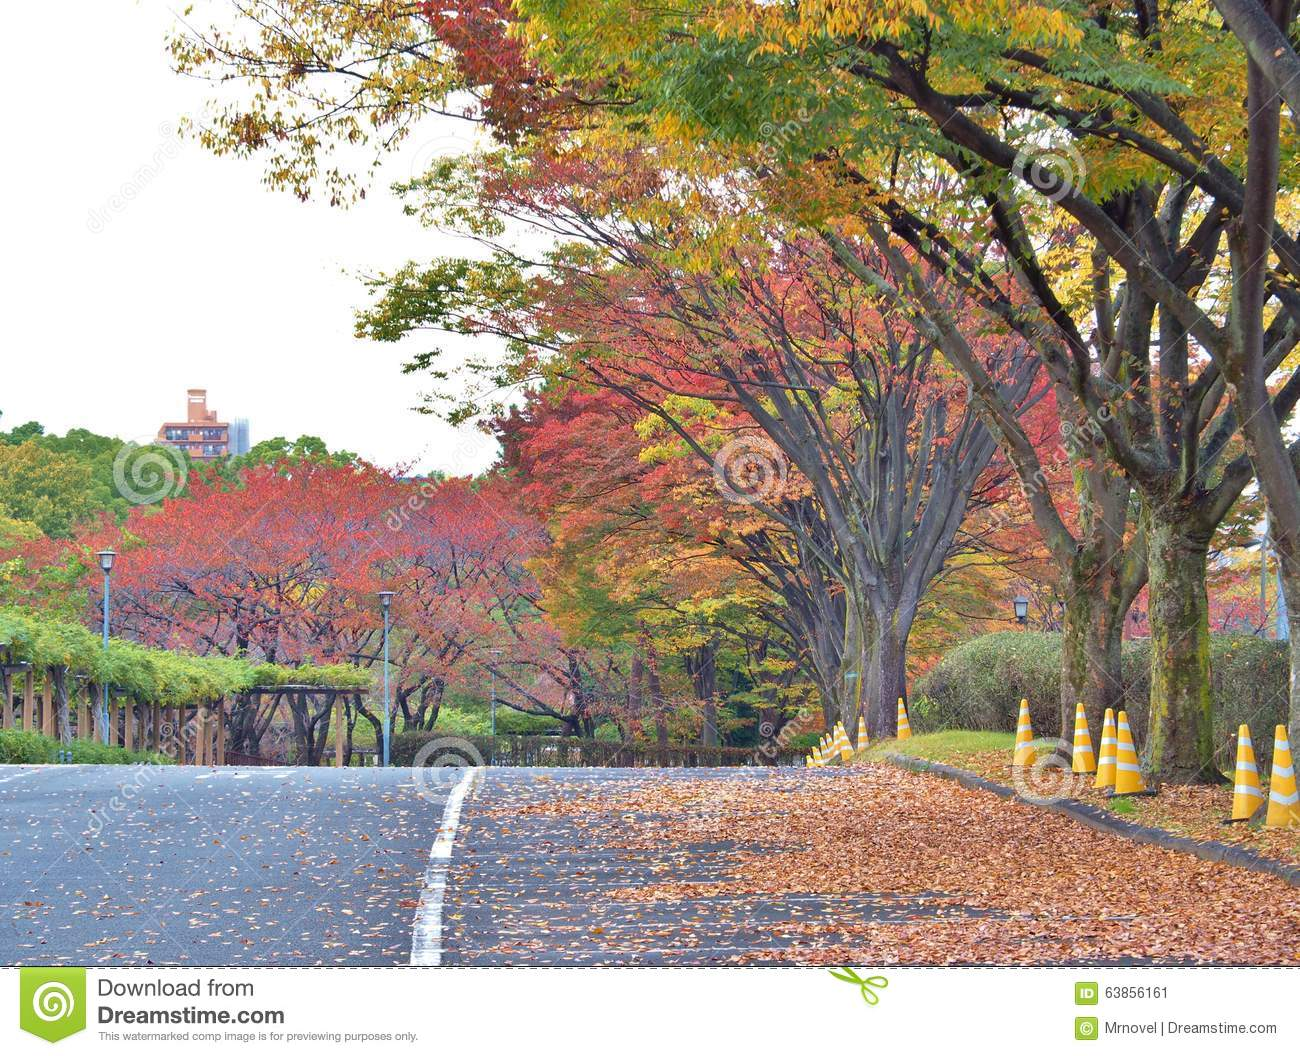 Walk way in Autumn at Nagoya, Japan.